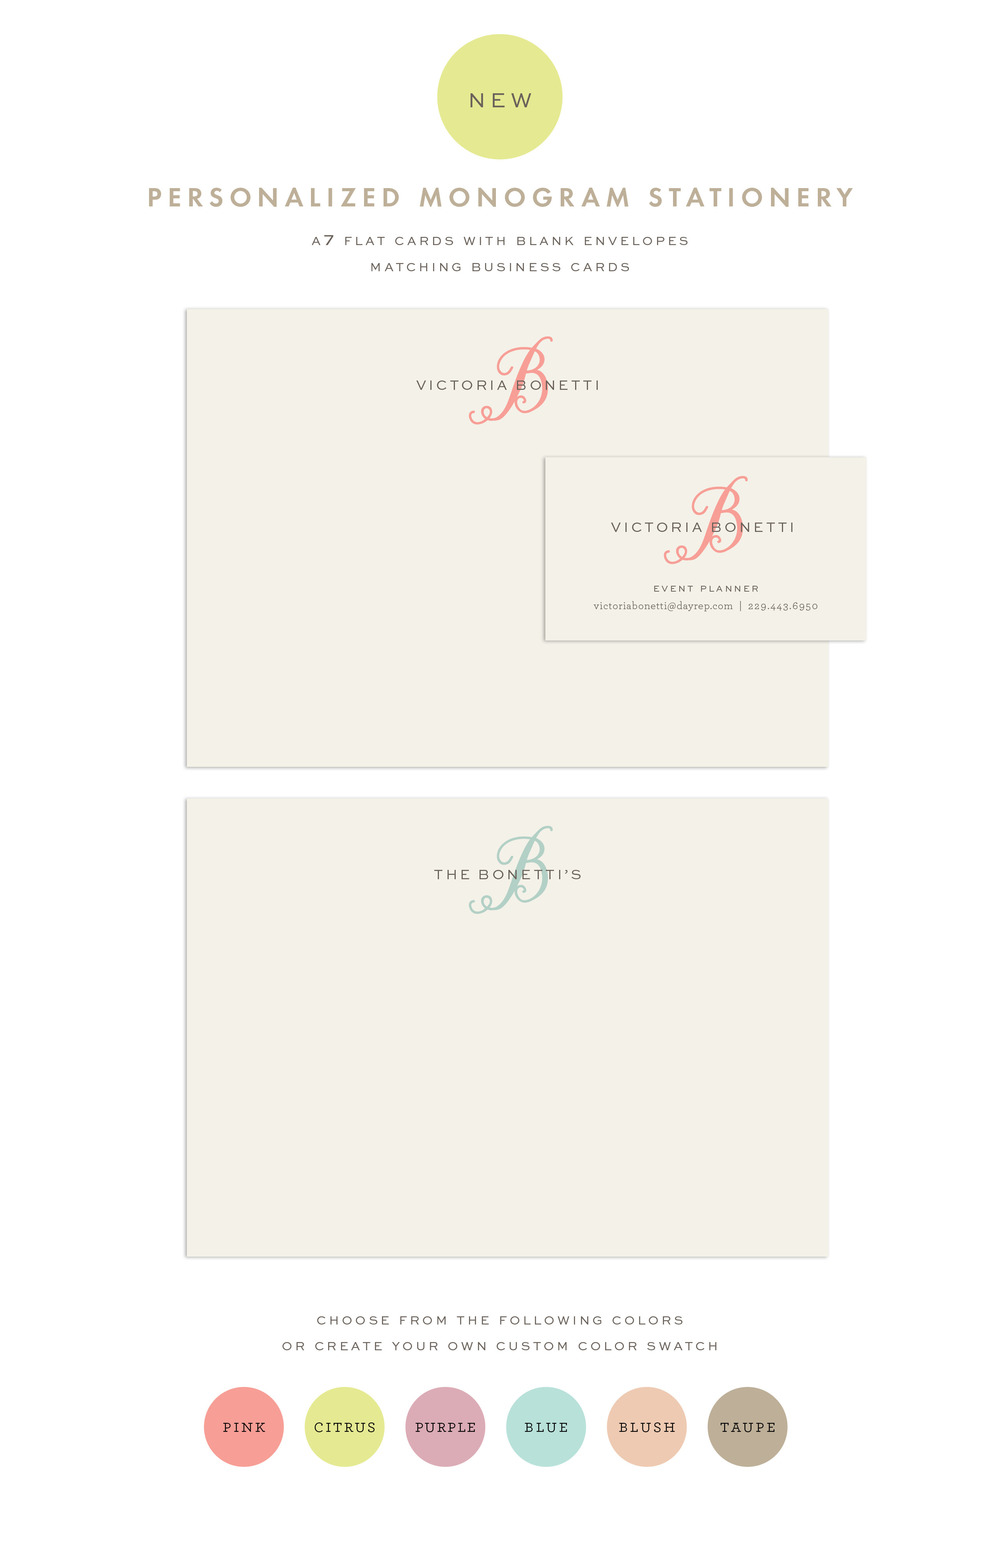 Anchor Point Paper Co. Personalized Monogram Stationery